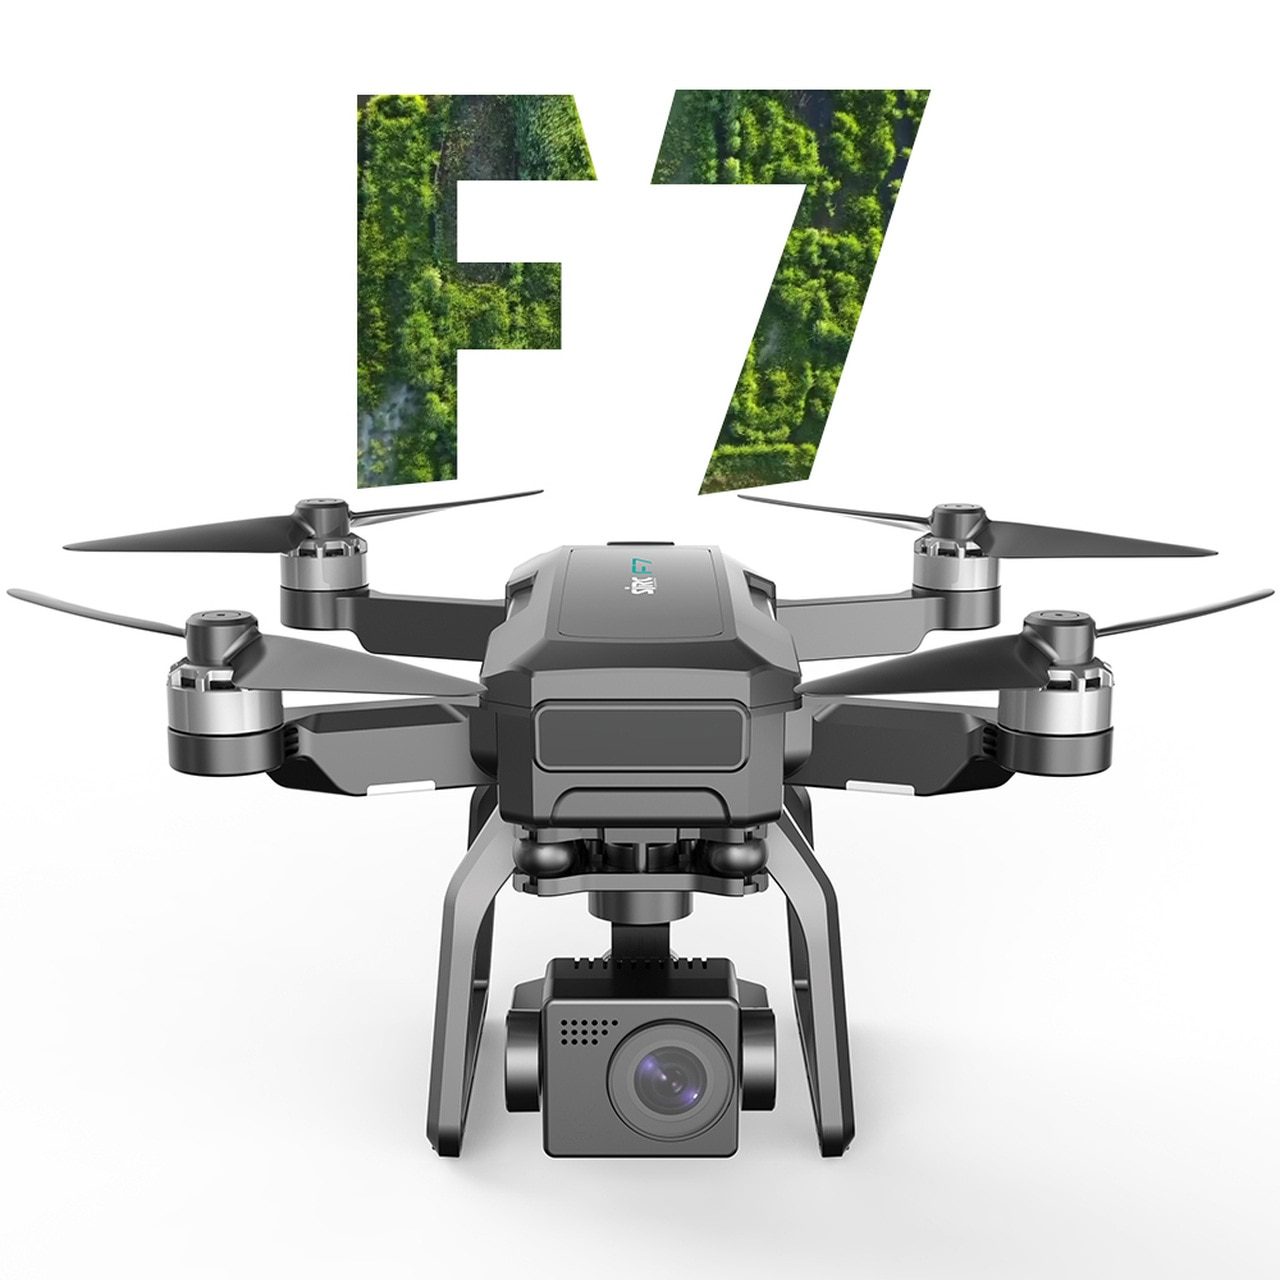 2021 NEW SJRC F7 4K PRO GPS Drones remote control 3-axis gimbal 4K optical flow dual camera 5G rc drone VS F11 4k pro enlarge